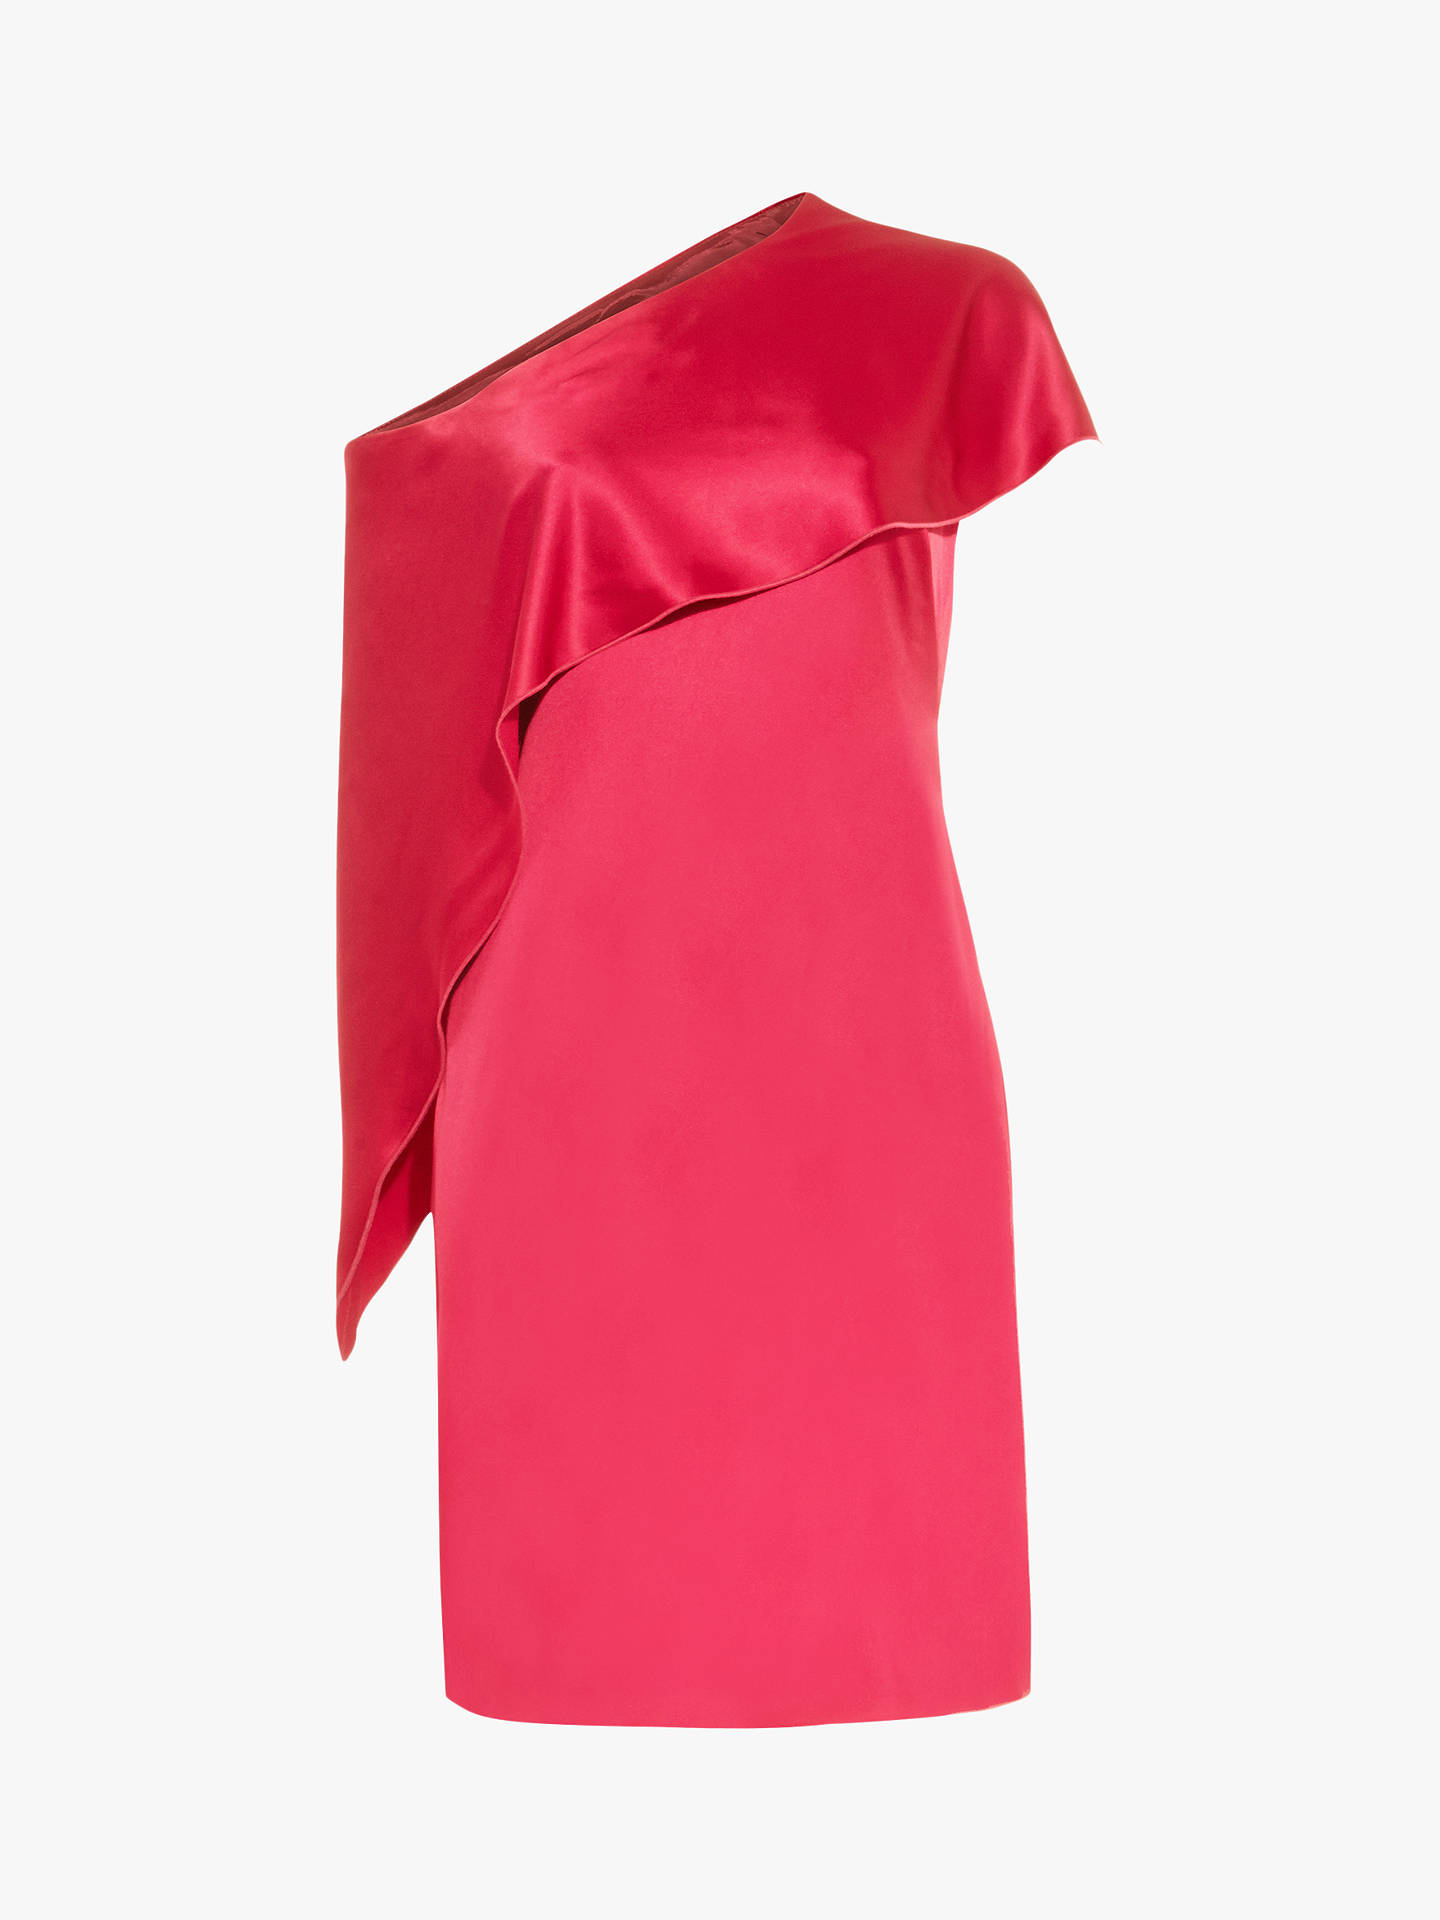 BuyDamsel in a Dress Asymmetric Frill Lissy Dress, Deep Rose, 16 Online at johnlewis.com